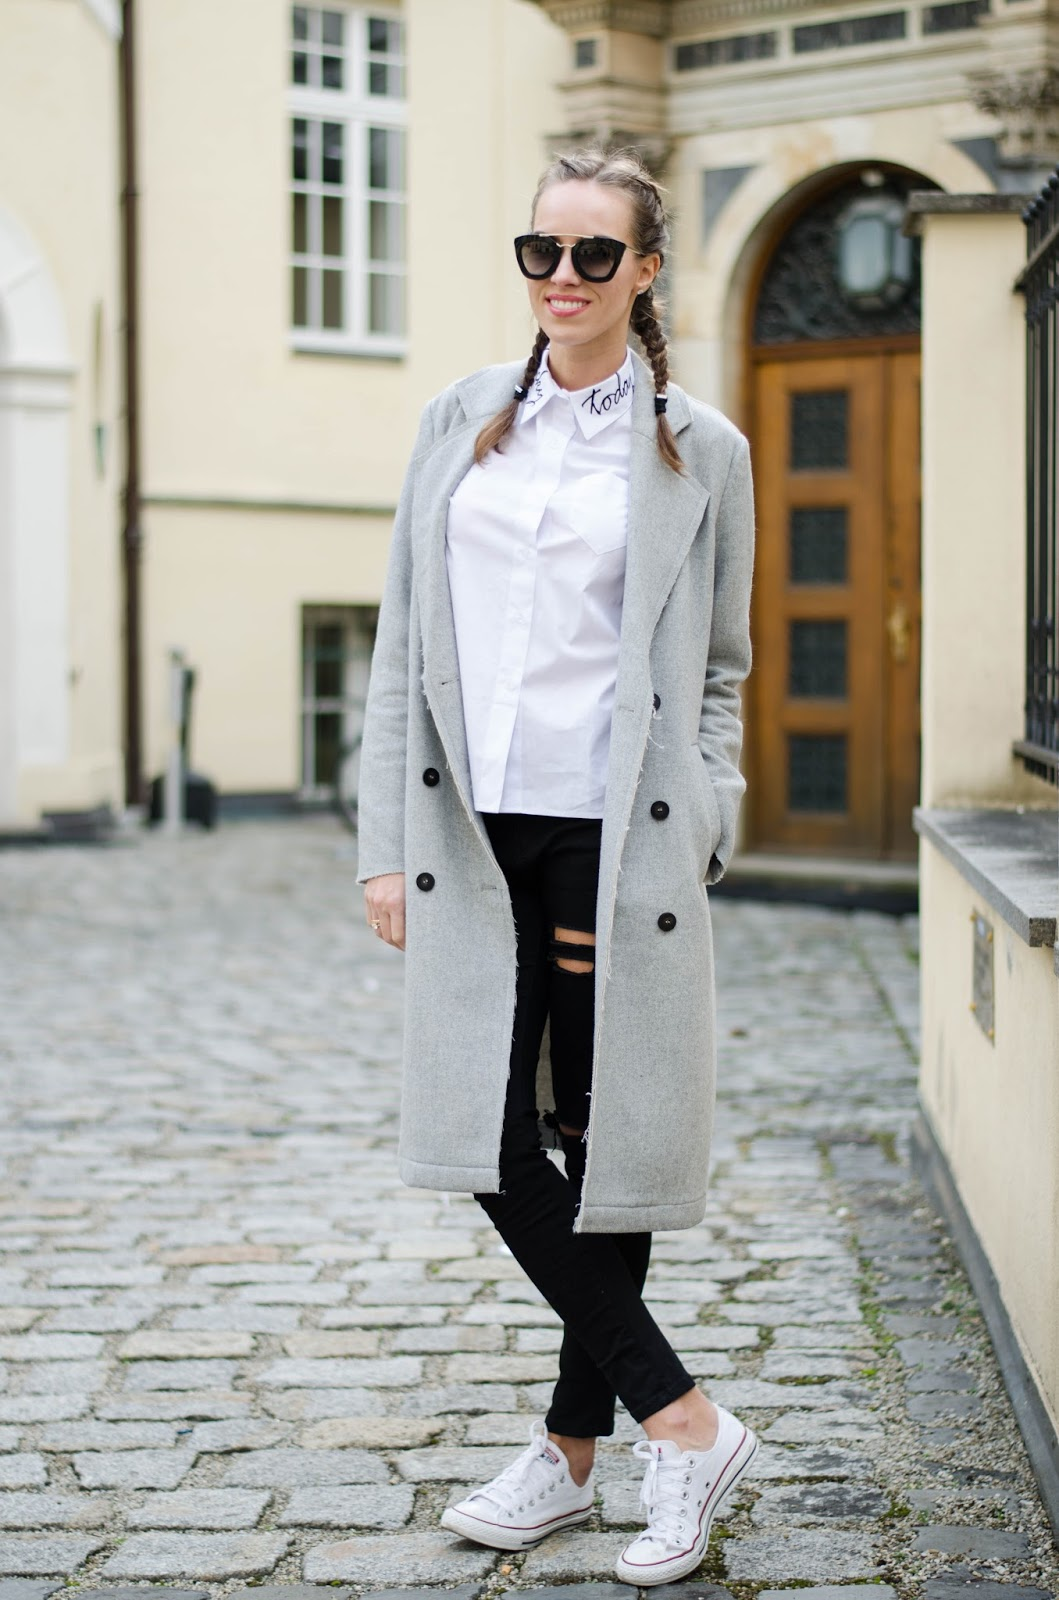 kristjaana gray coat white shirt black skinny jeans white sneakers winter outfit